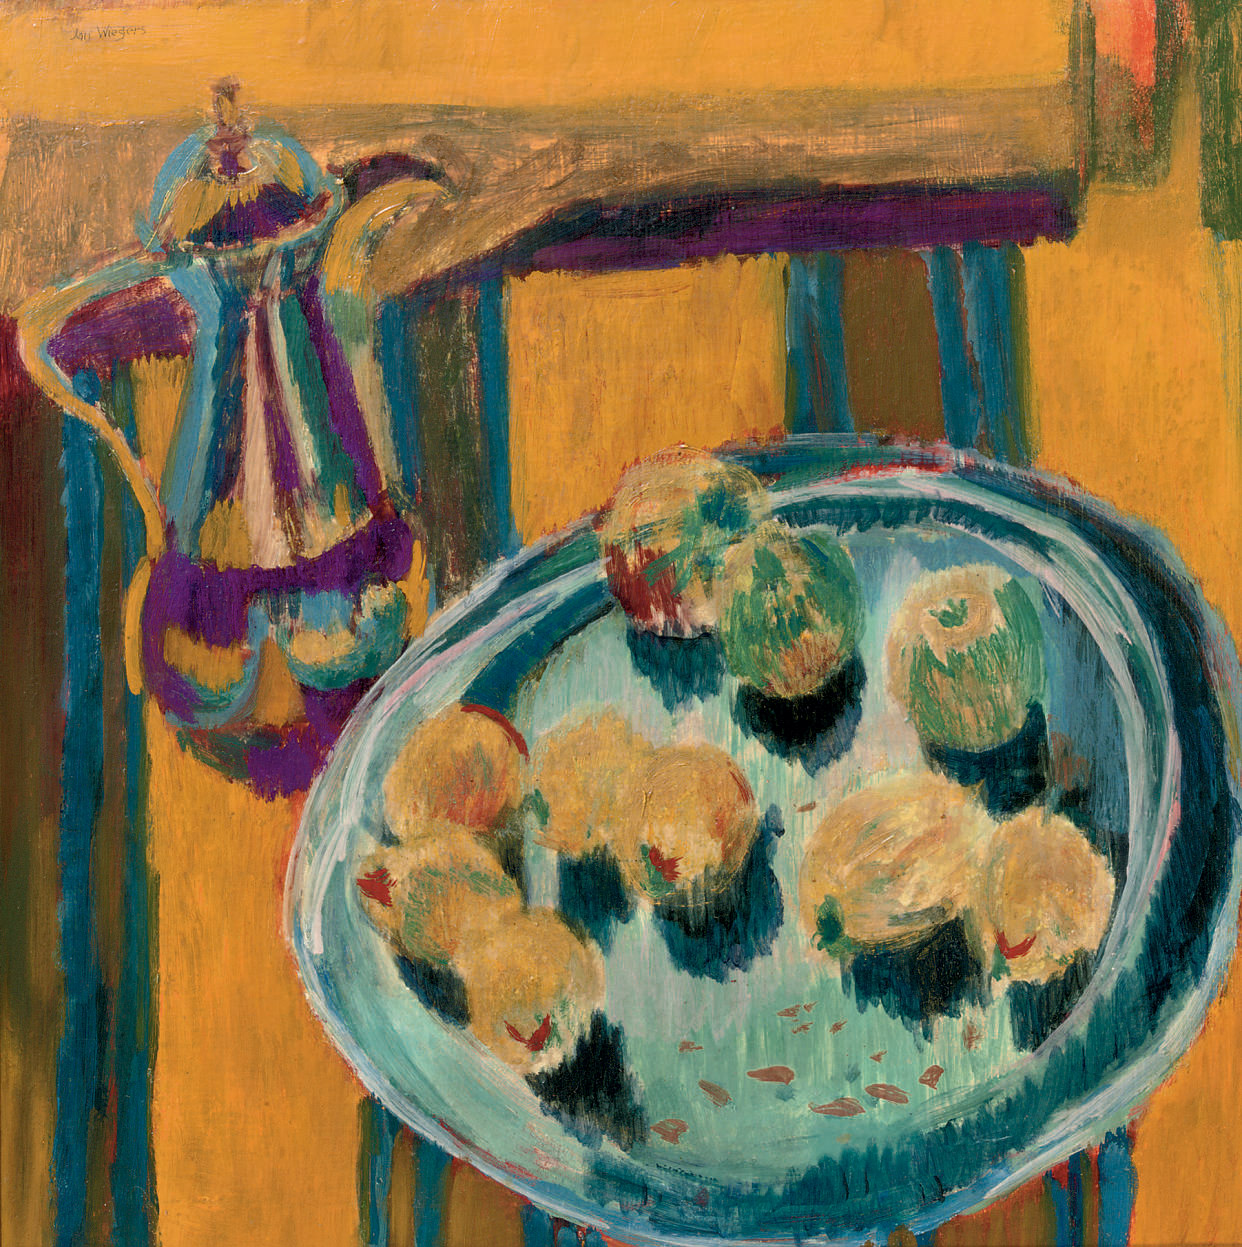 A still life with a coffeepot and fruits on a tray